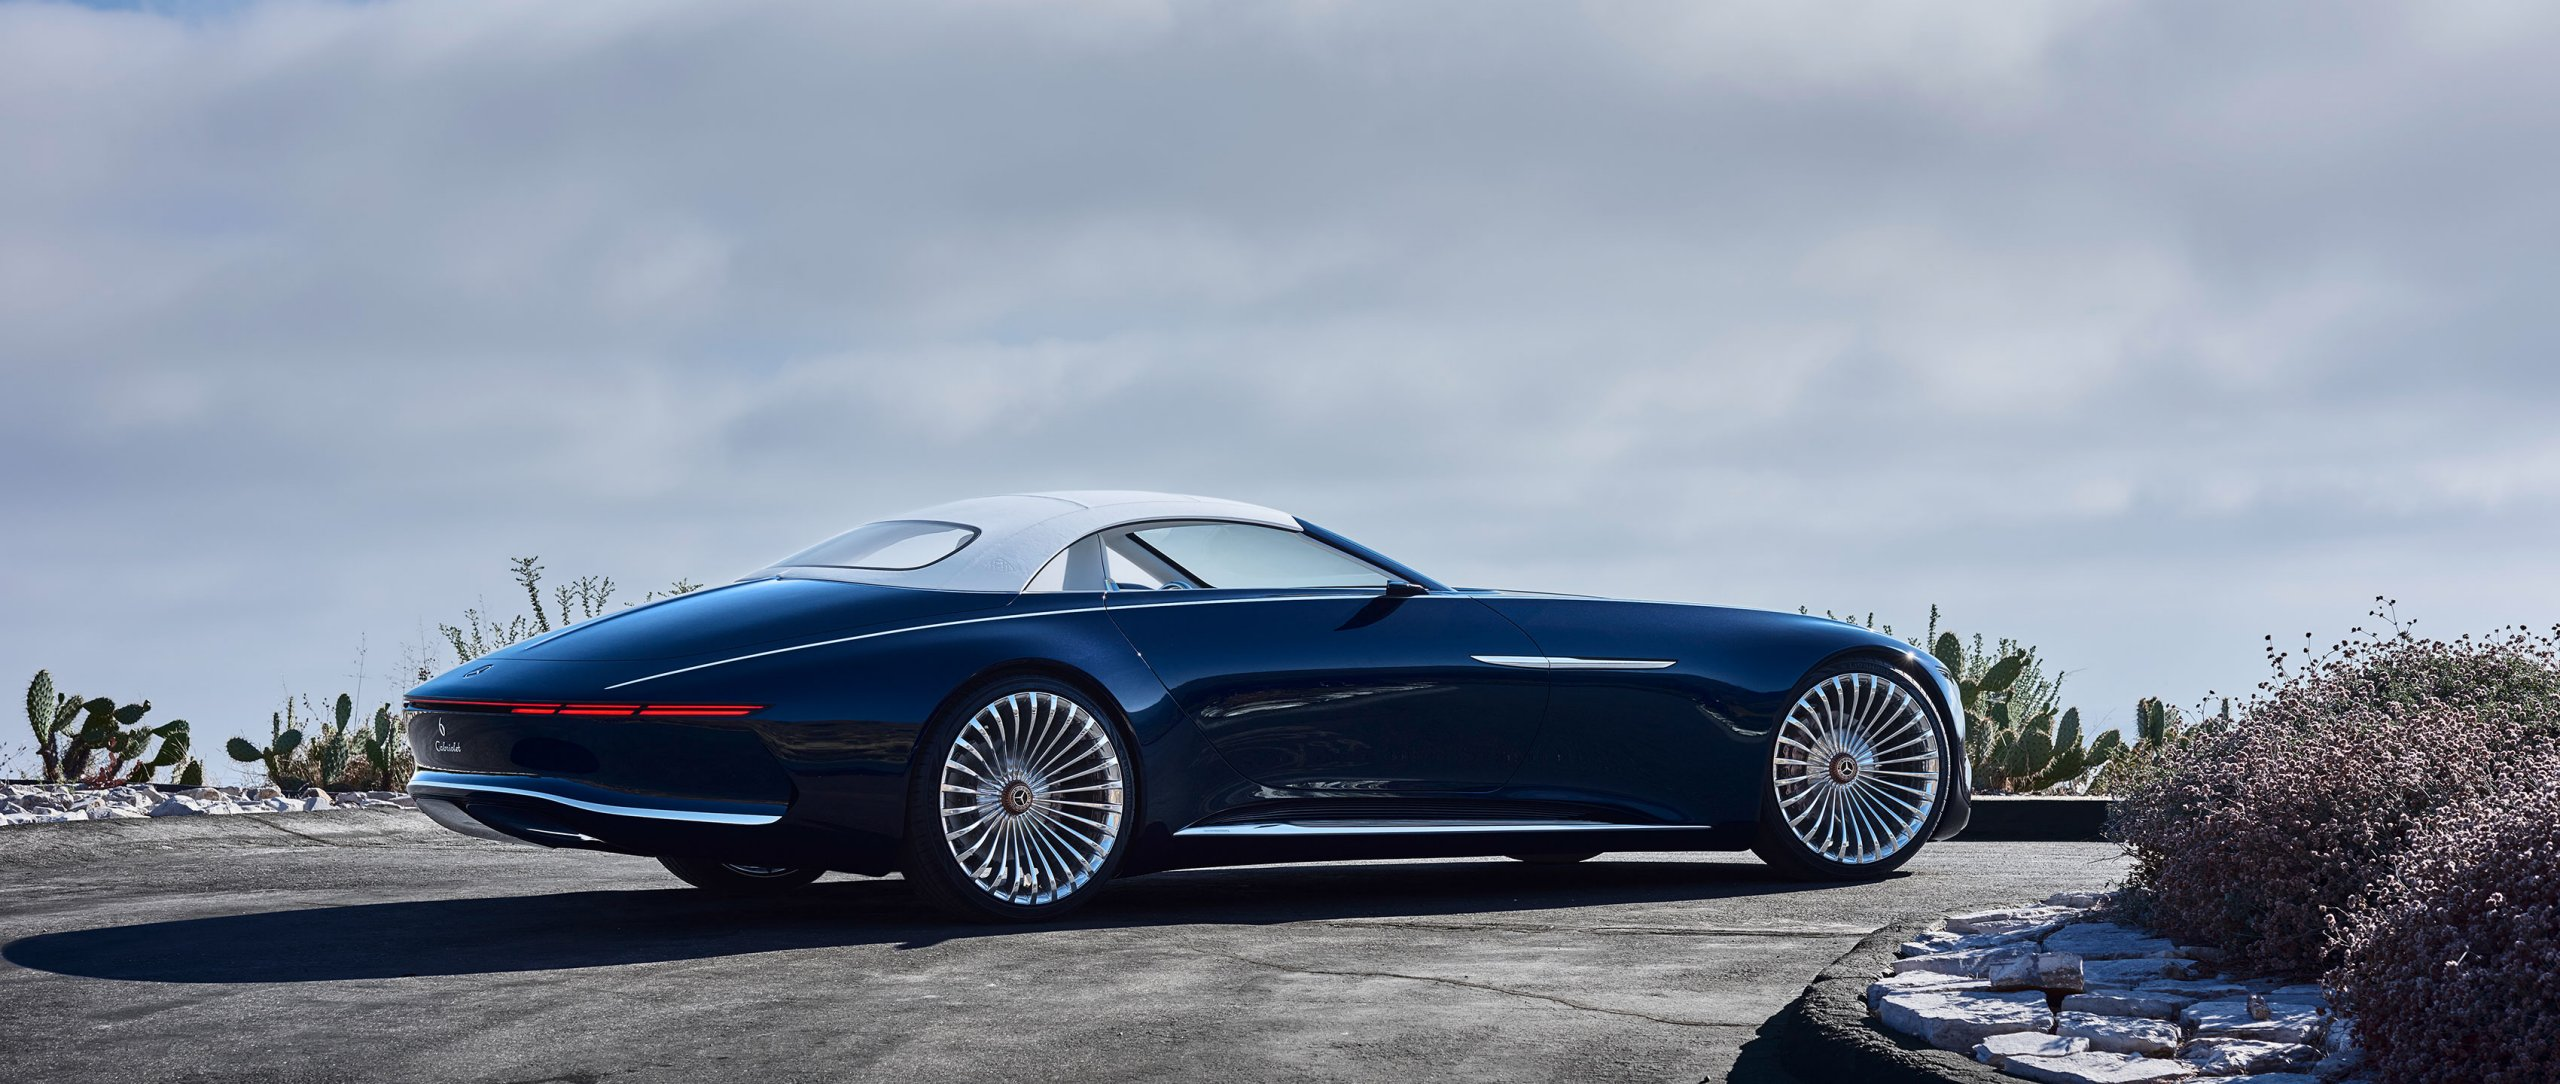 The Vision Mercedes-Maybach 6 Cabriolet incorporates the classic proportions of art deco design with its extremely long bonnet and puristic, flowing lines.